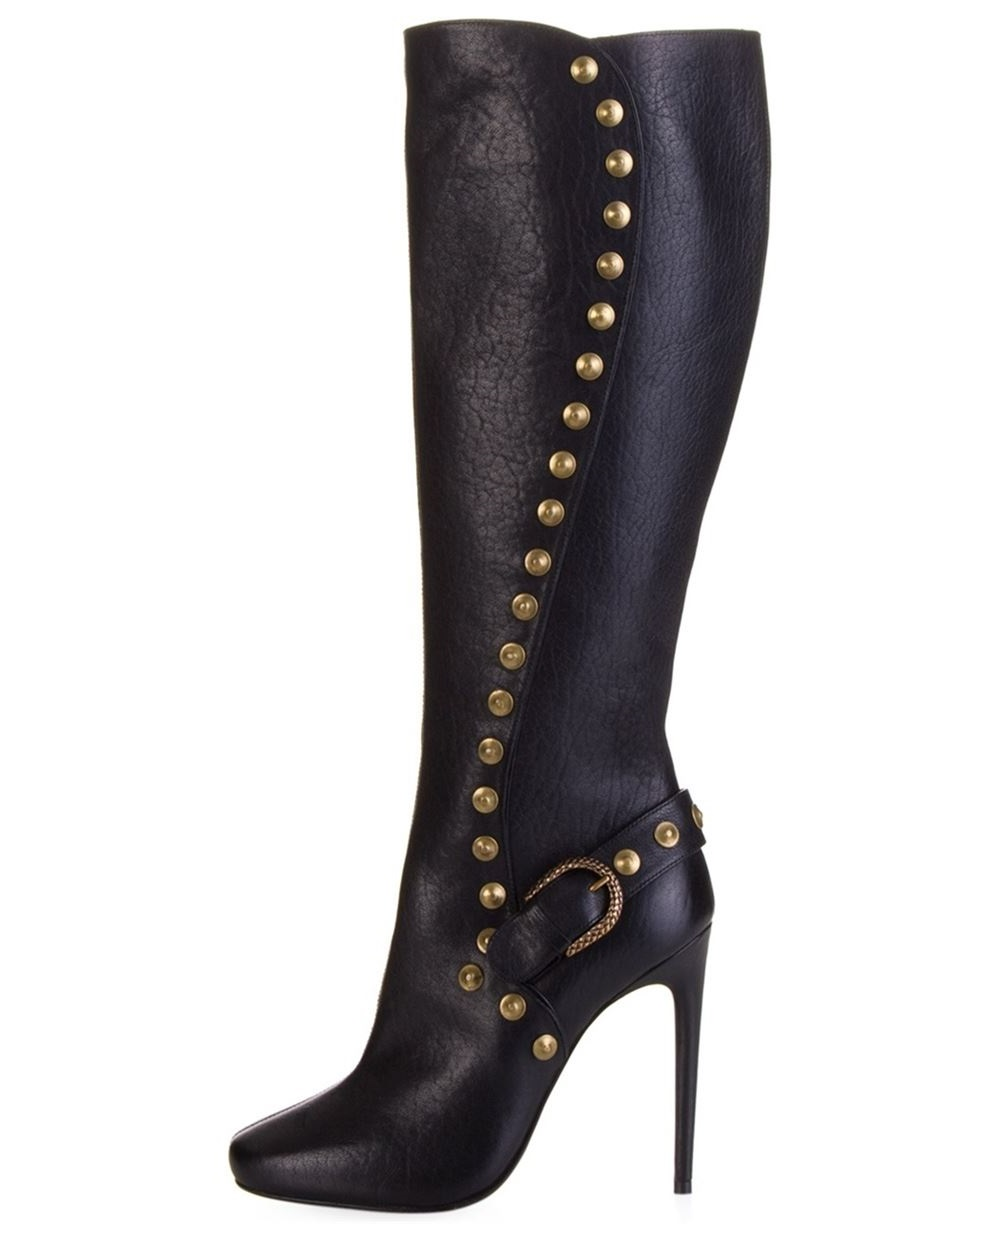 2016 stiletto Sky High heel women's winter boots zipper knee high boots With rivets and Buckle big size For Christmas